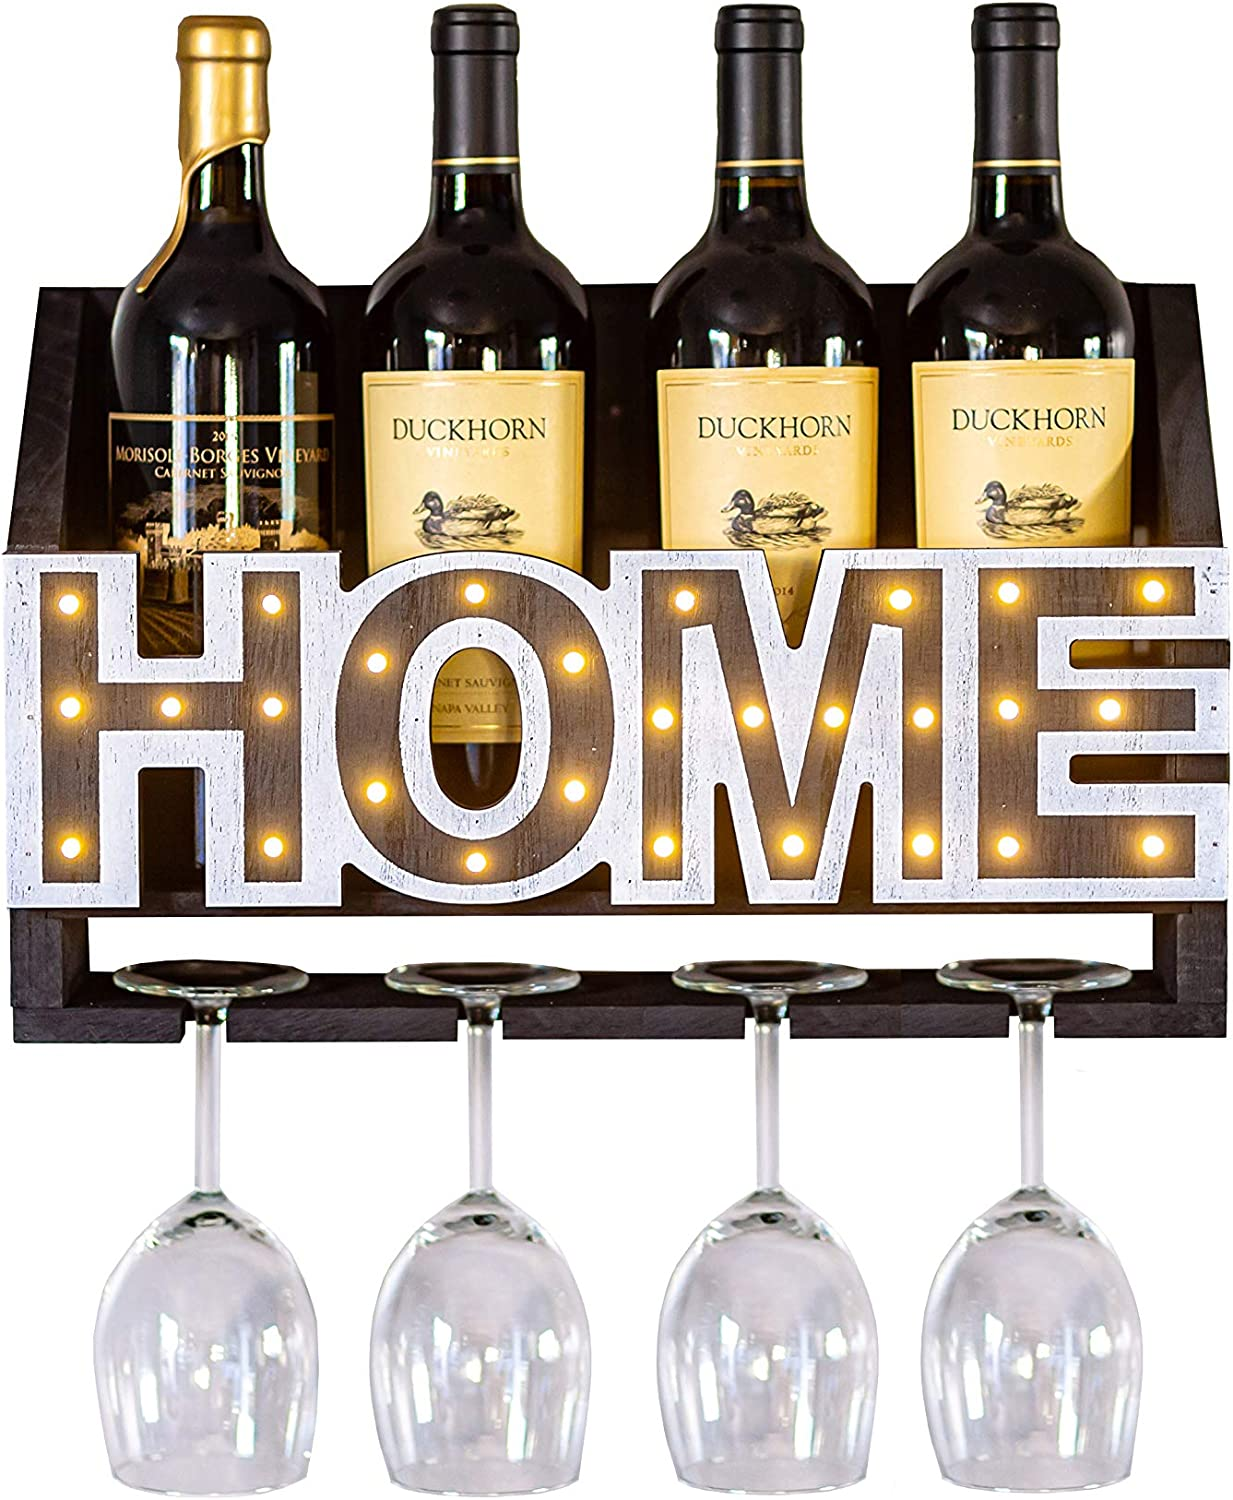 ienjoyware Wooden Wall Mounted Home LED Wine Rack and Glass Holder – Wall Décor for Home Interior – Wine Racks Display with LED – 4-Bottle and 4-Glass Holder